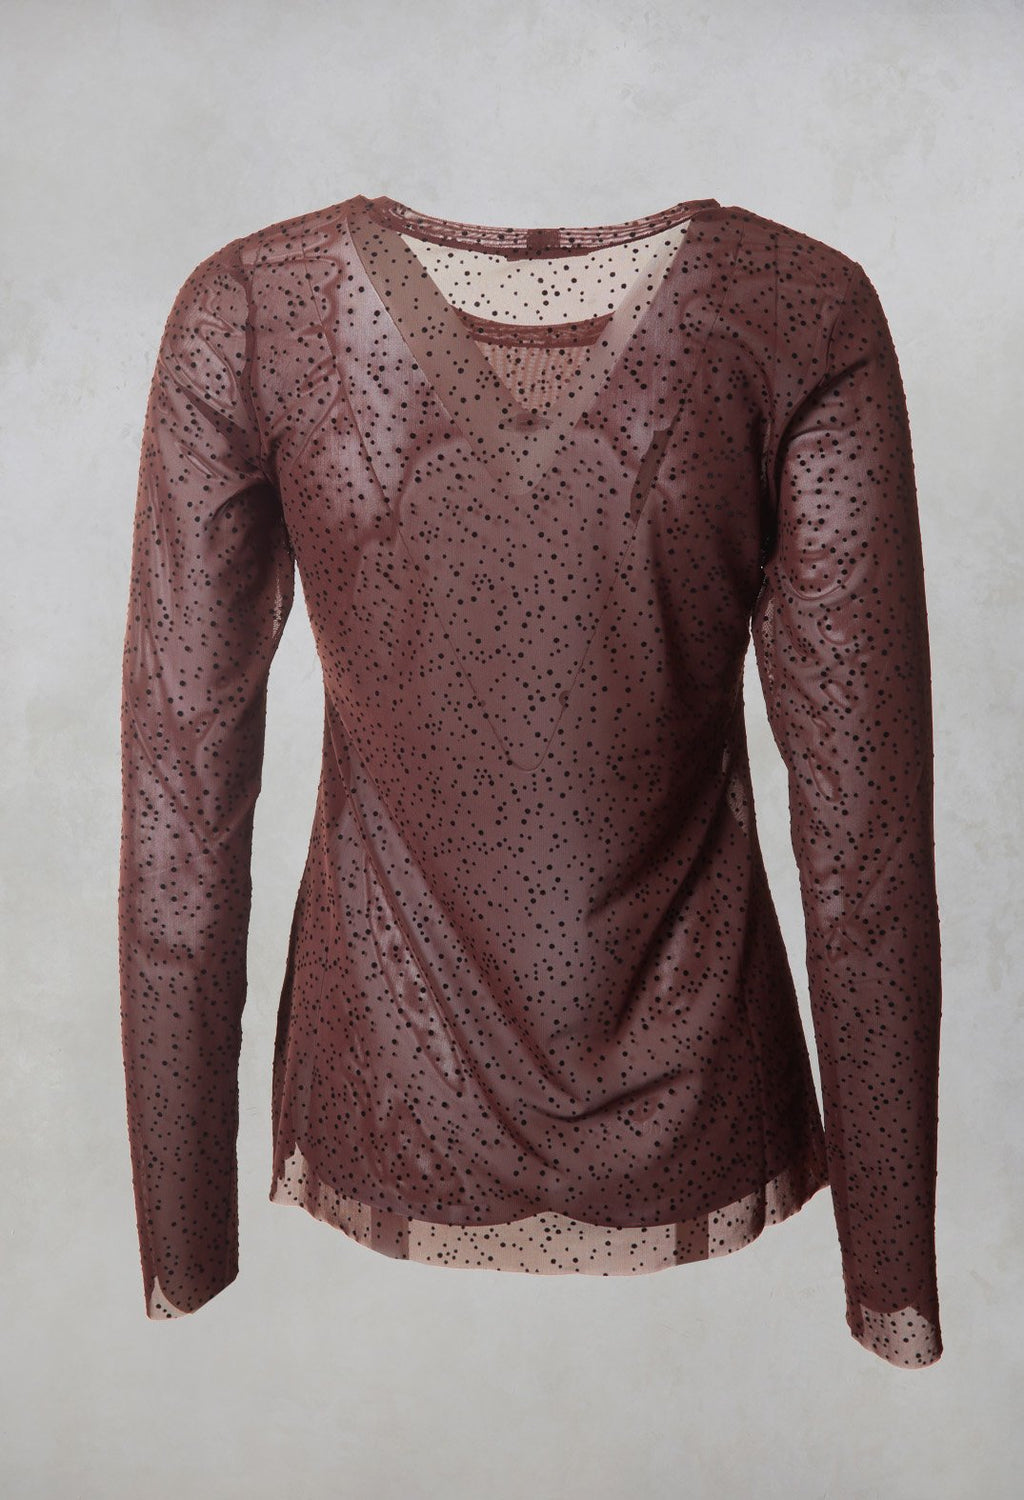 Sheer Textured T-Shirt in Wine Spot